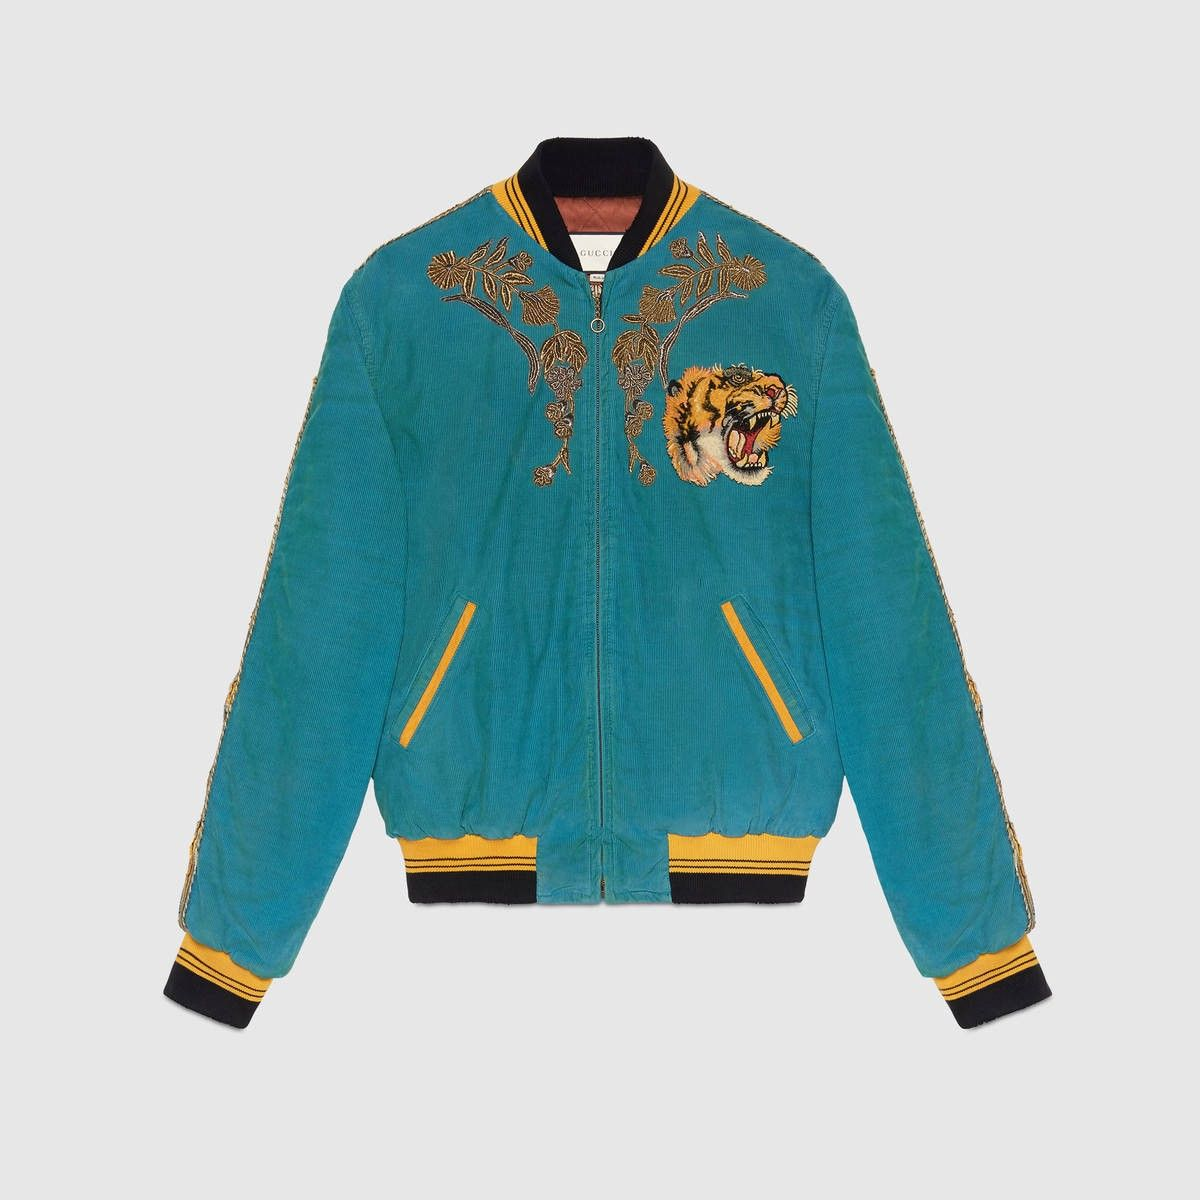 GUCCI Embroidered Corduroy Bomber Jacket - Blue Corduroy.  gucci  cloth  all 737e4b6fc5b